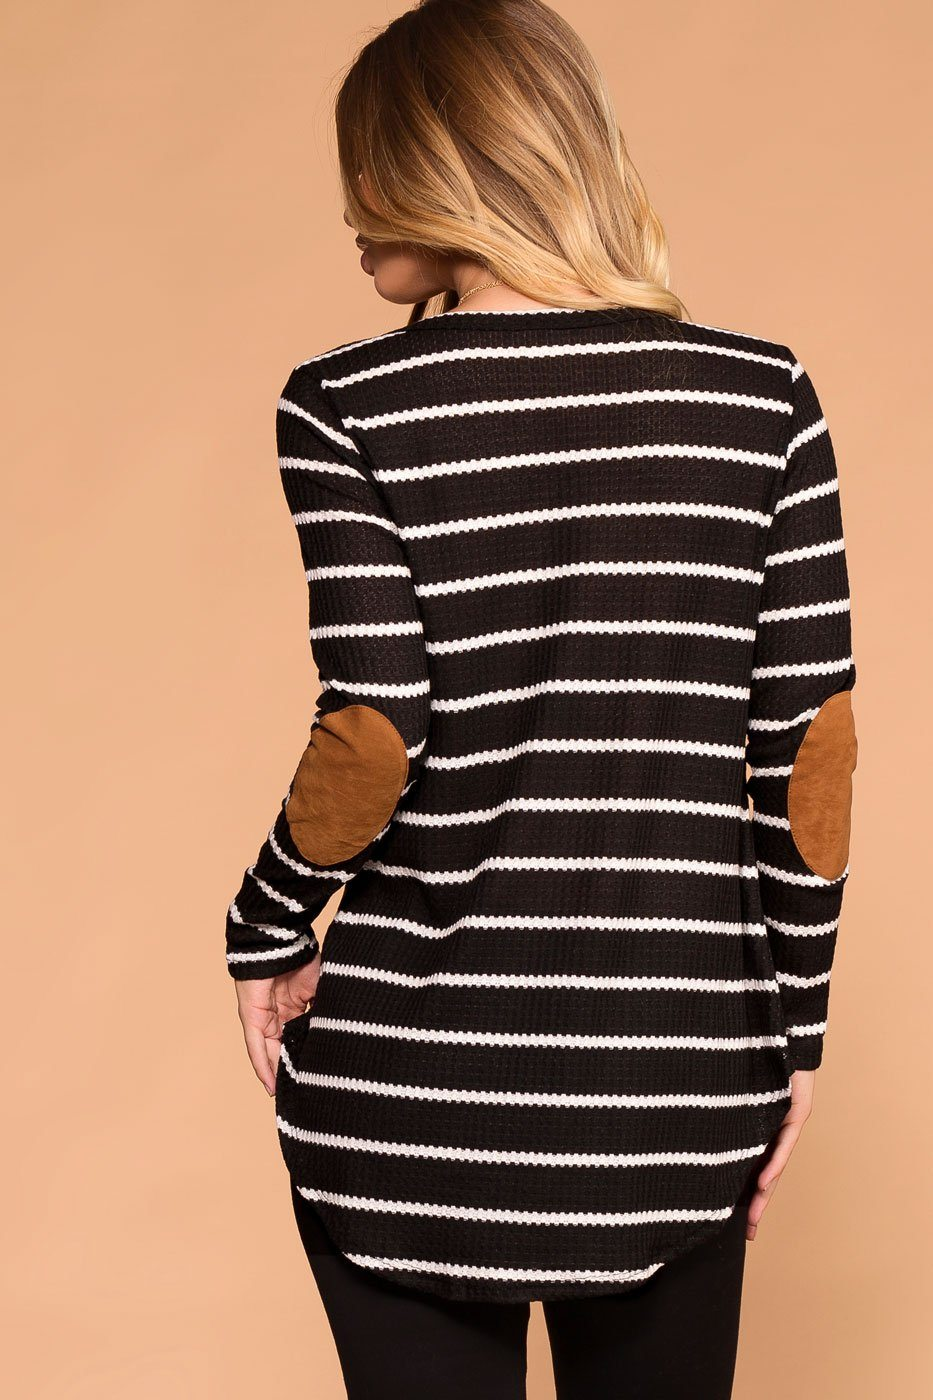 Priceless | Black and White | Stripe Sweater | Elbow Patch | Womens